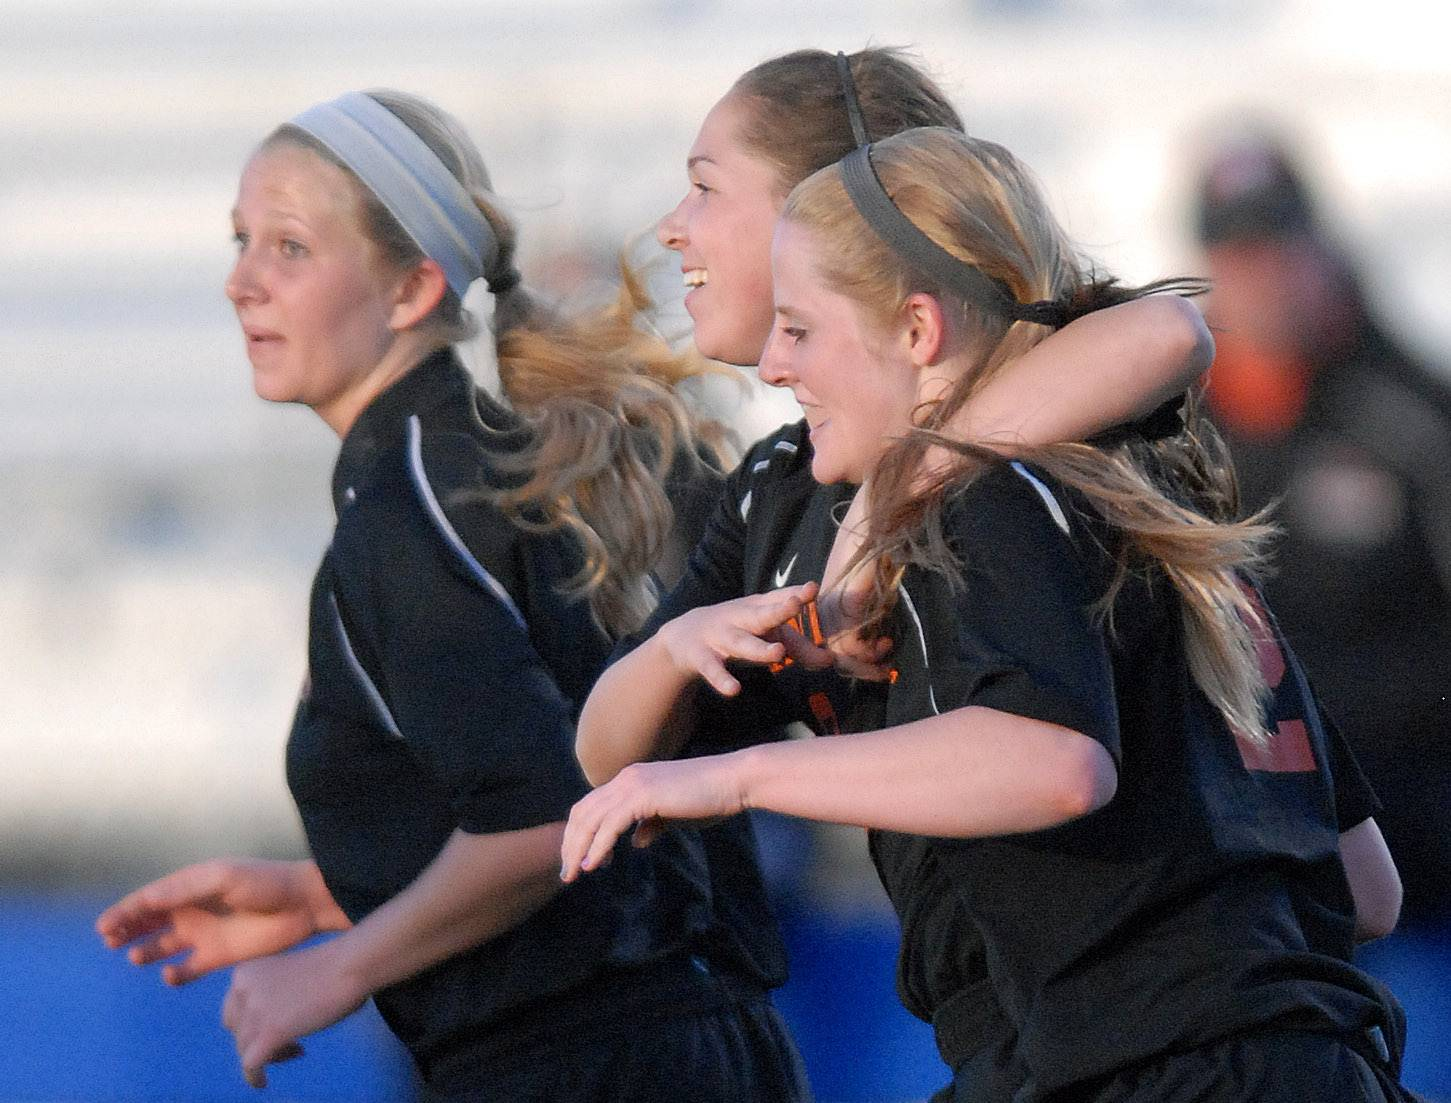 St. Charles East's Darcy Cunningham, center, wraps her arm around teammate Julia Peterson as she celebrates scoring a goal in the first half on Tuesday, April 22.